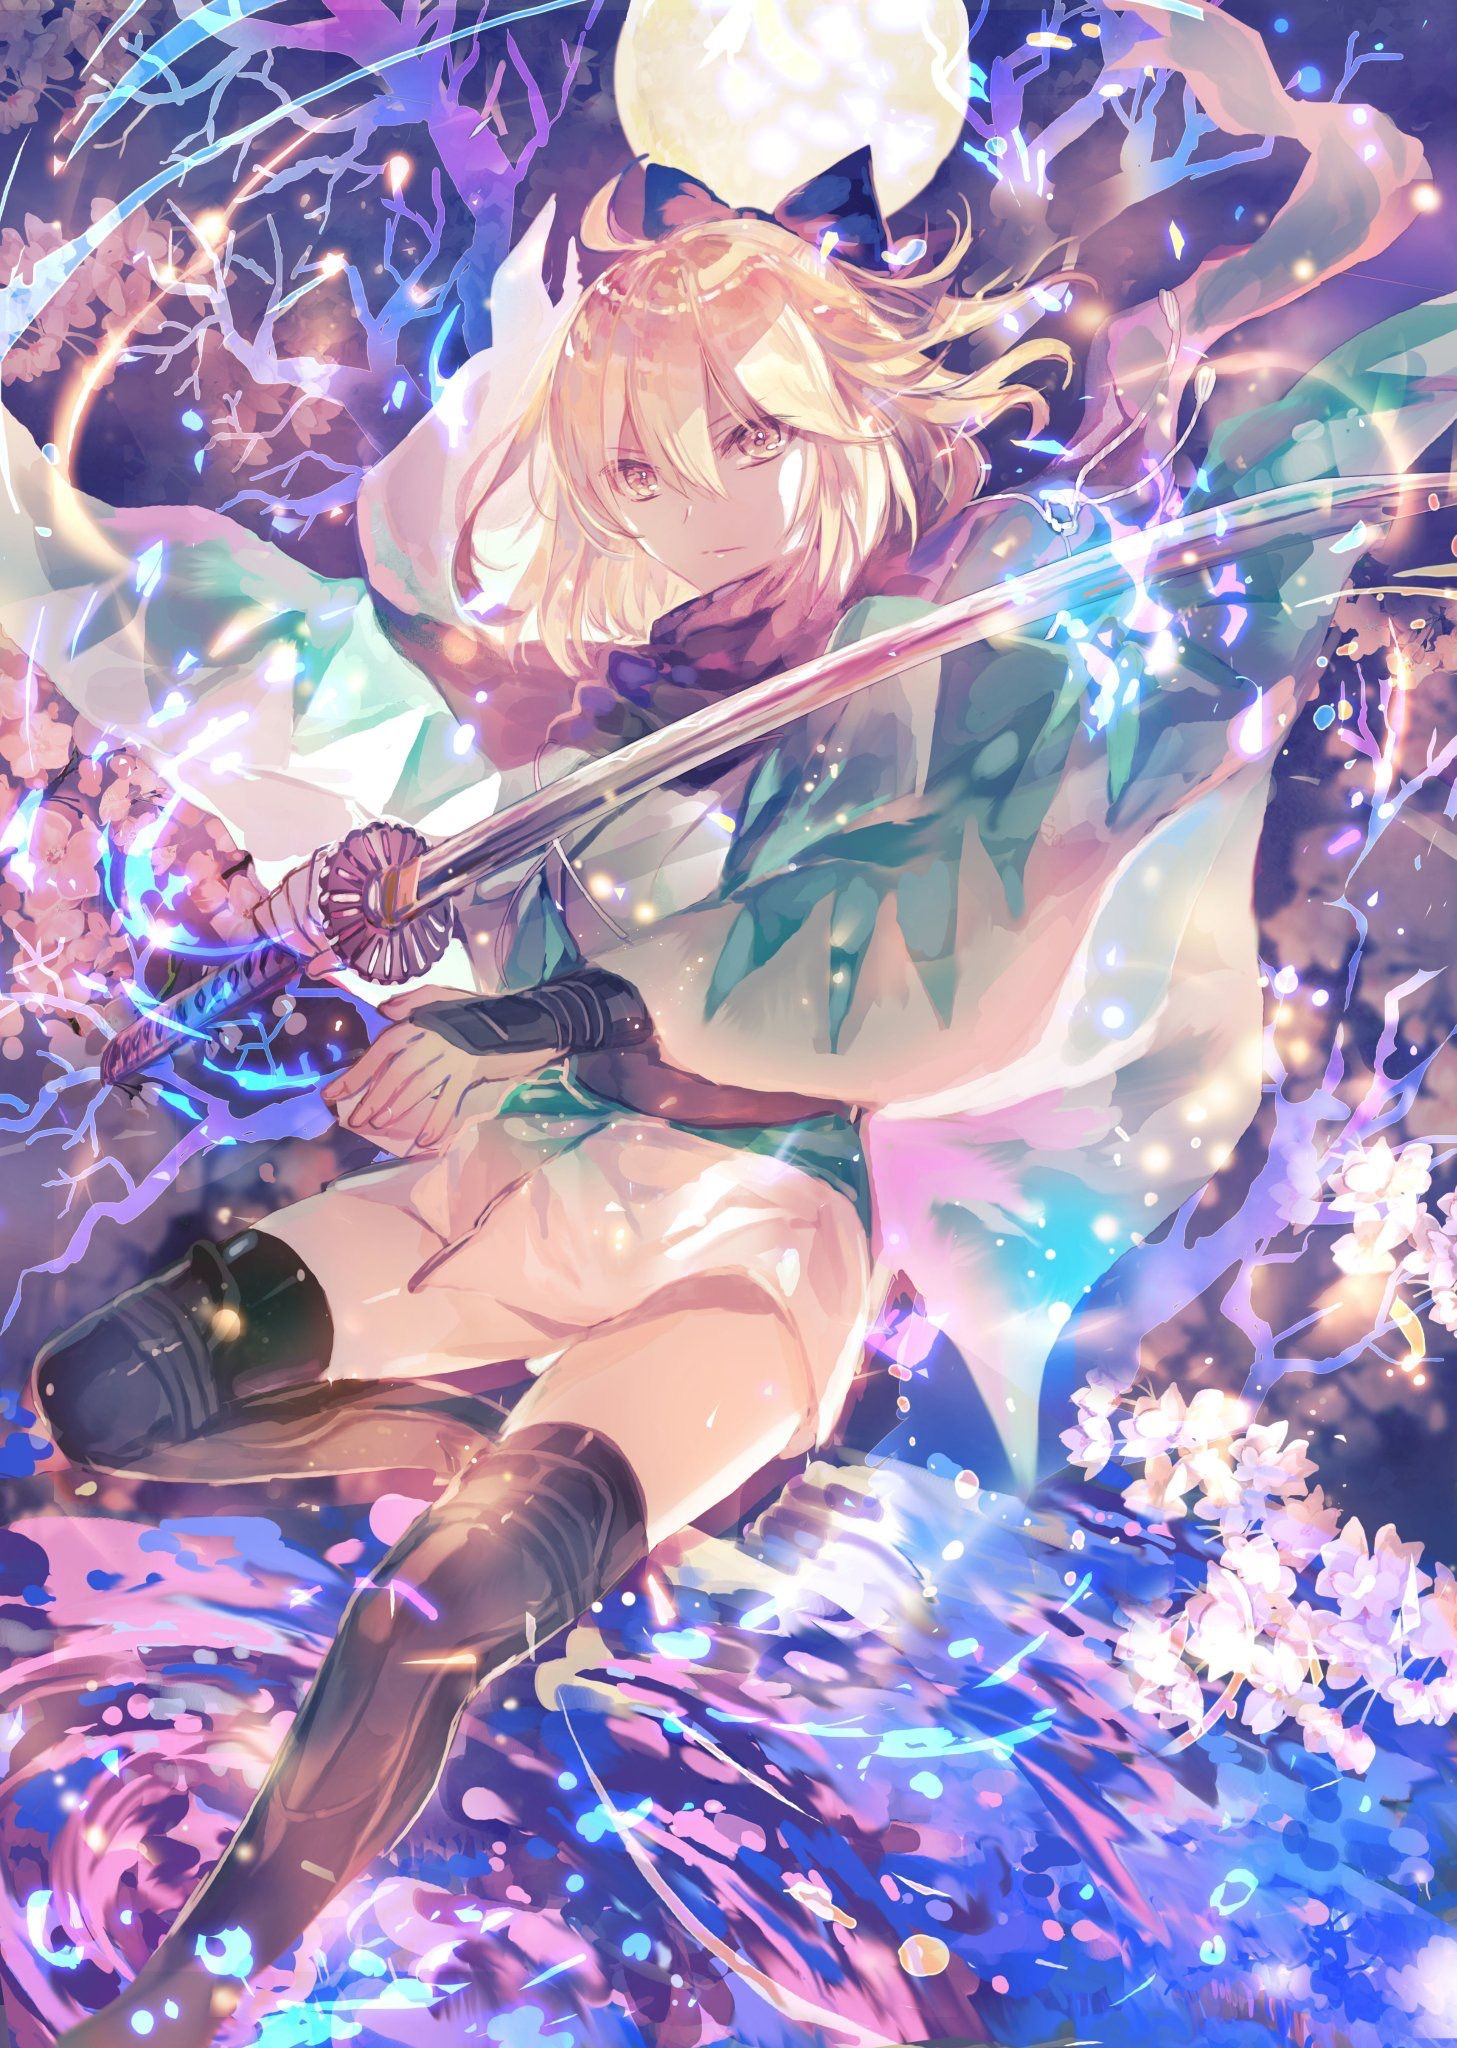 Pin By Woly Remix On Anime Art Anime Anime Art Beautiful Anime Images